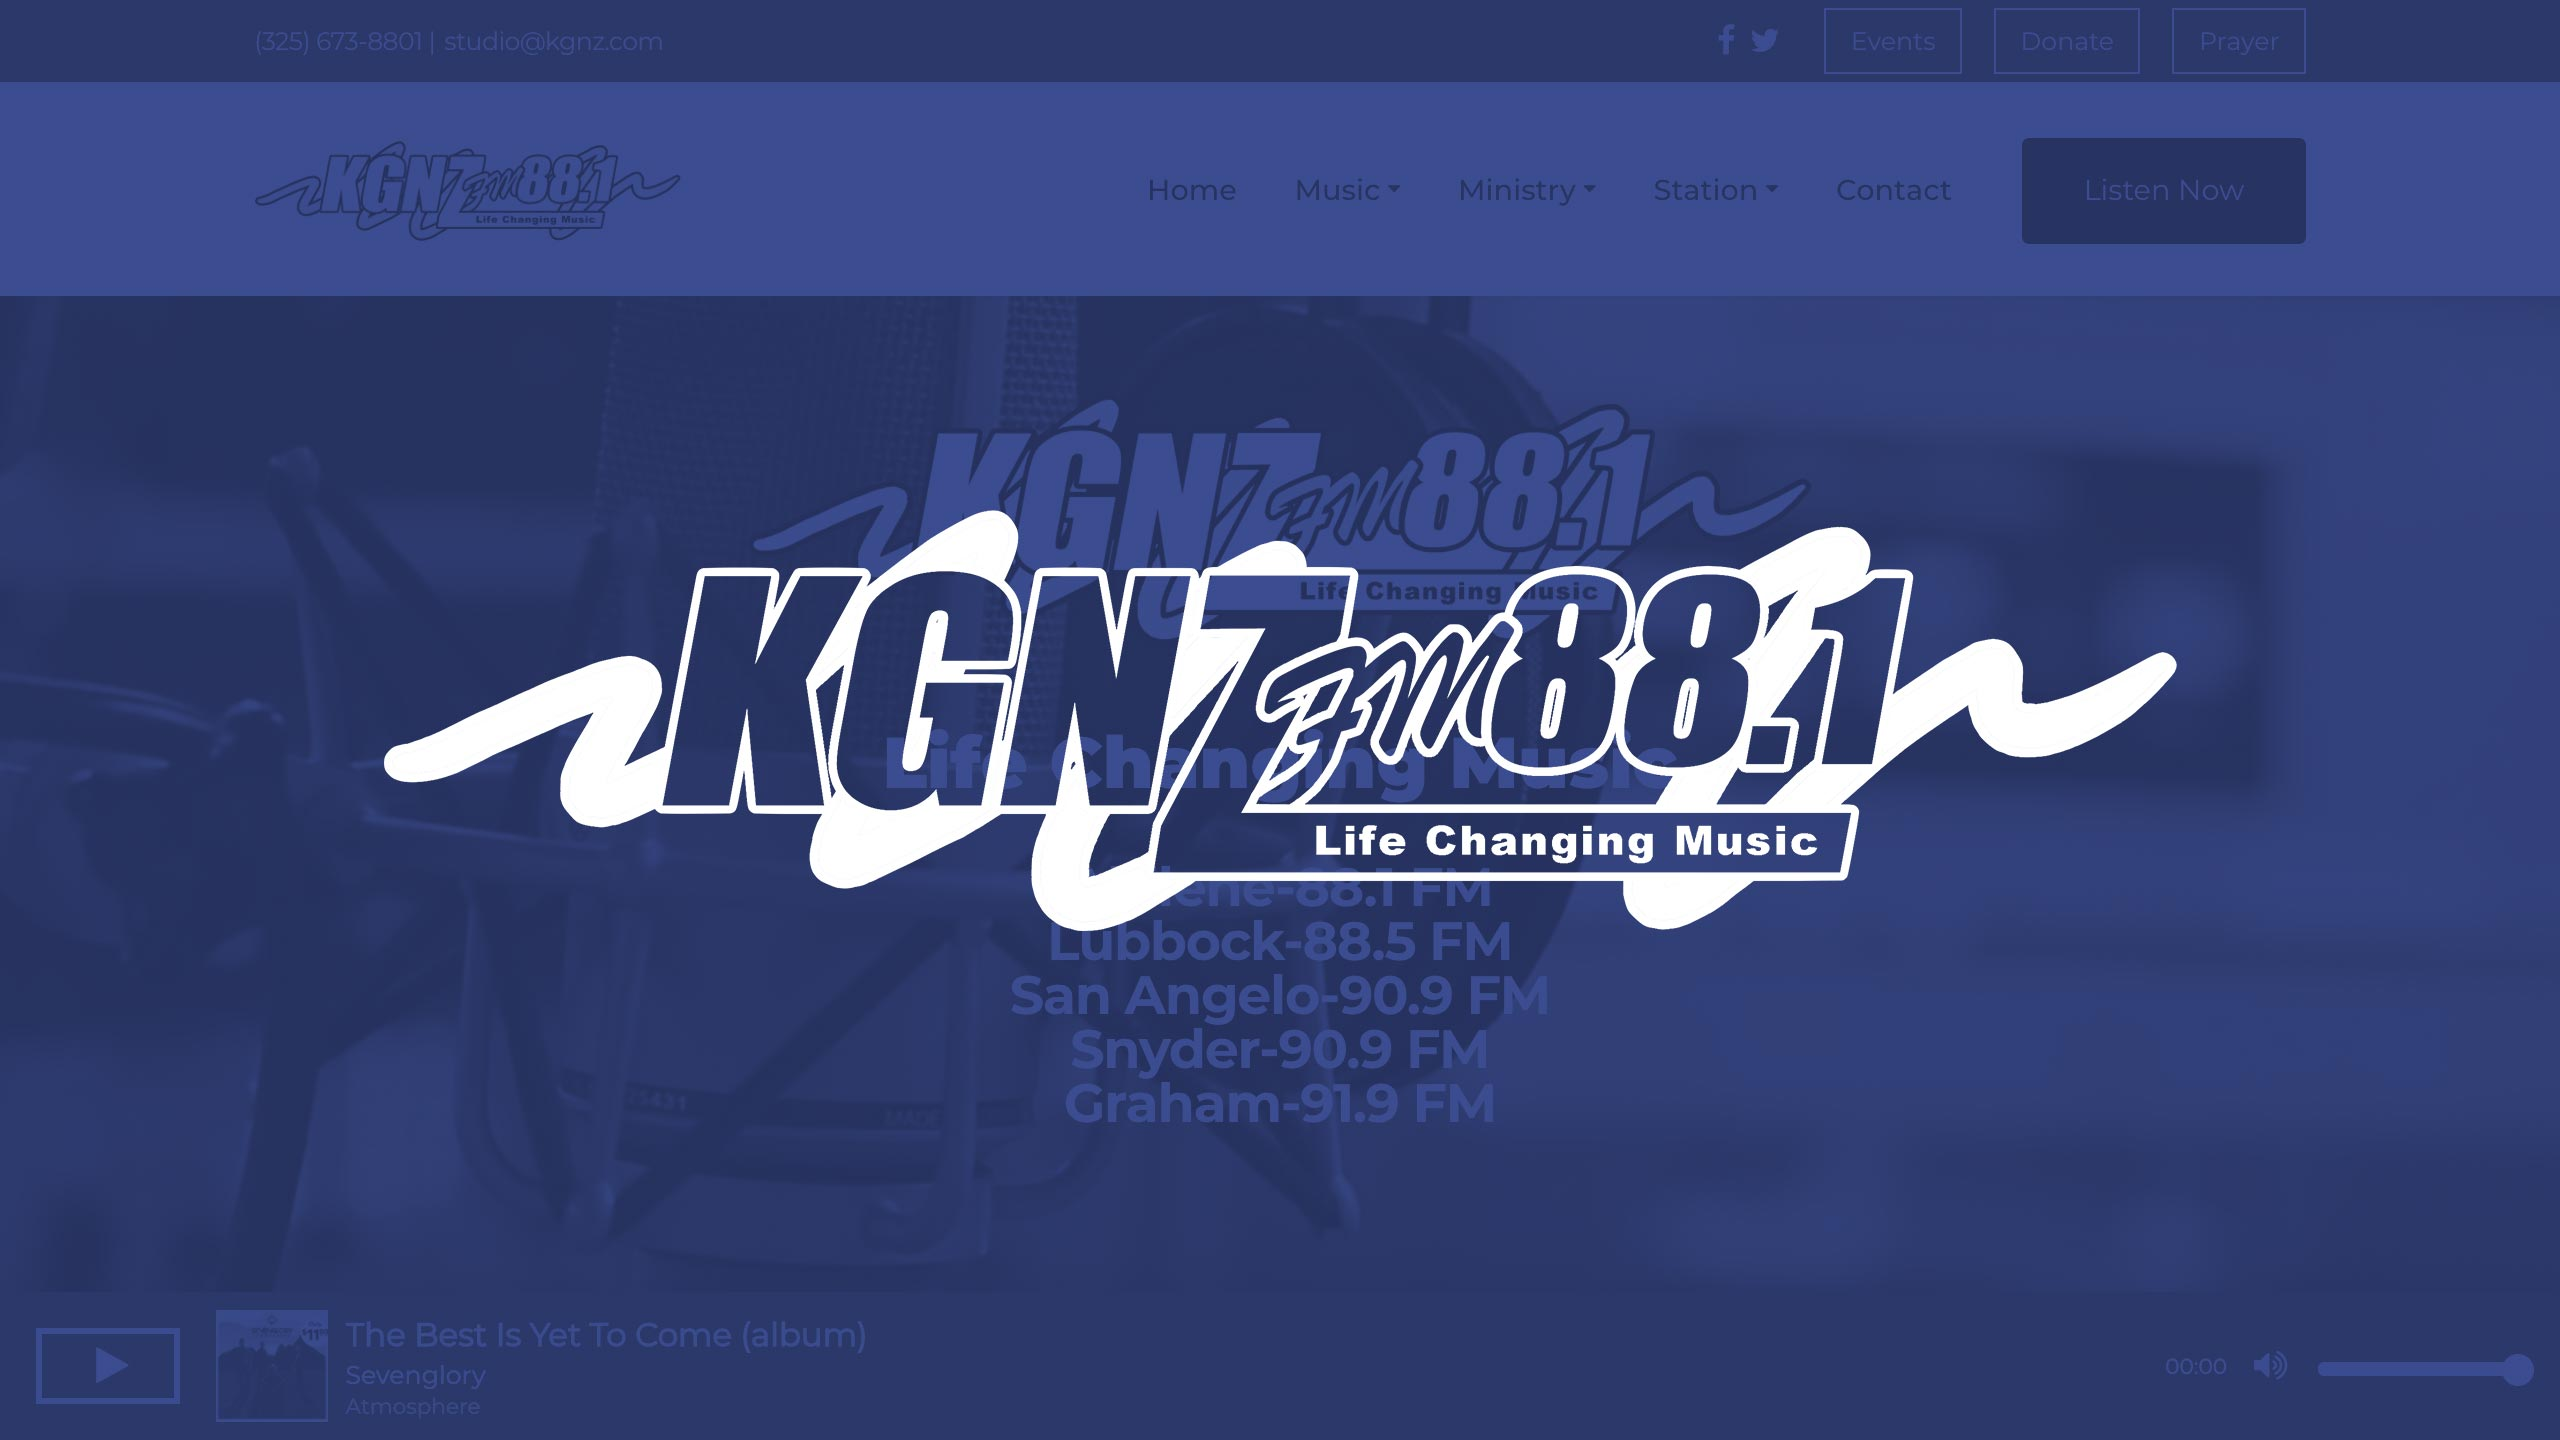 Web Development – KGNZ Radio